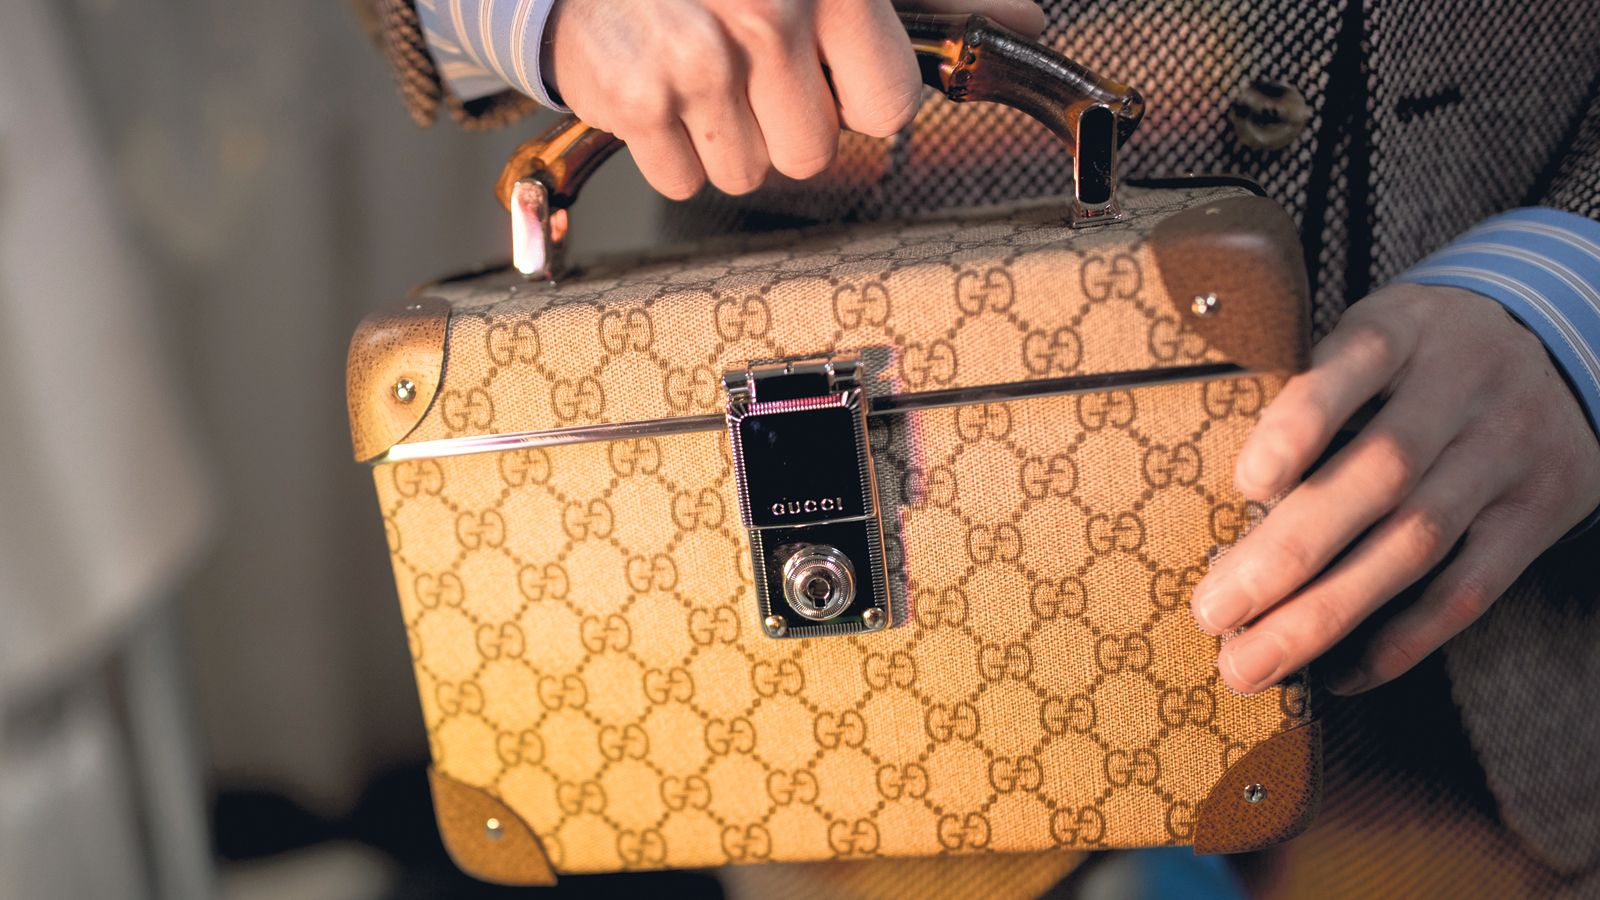 c509d1245c86 GG beauty box case from Gucci Fall/Winter 2018 show.